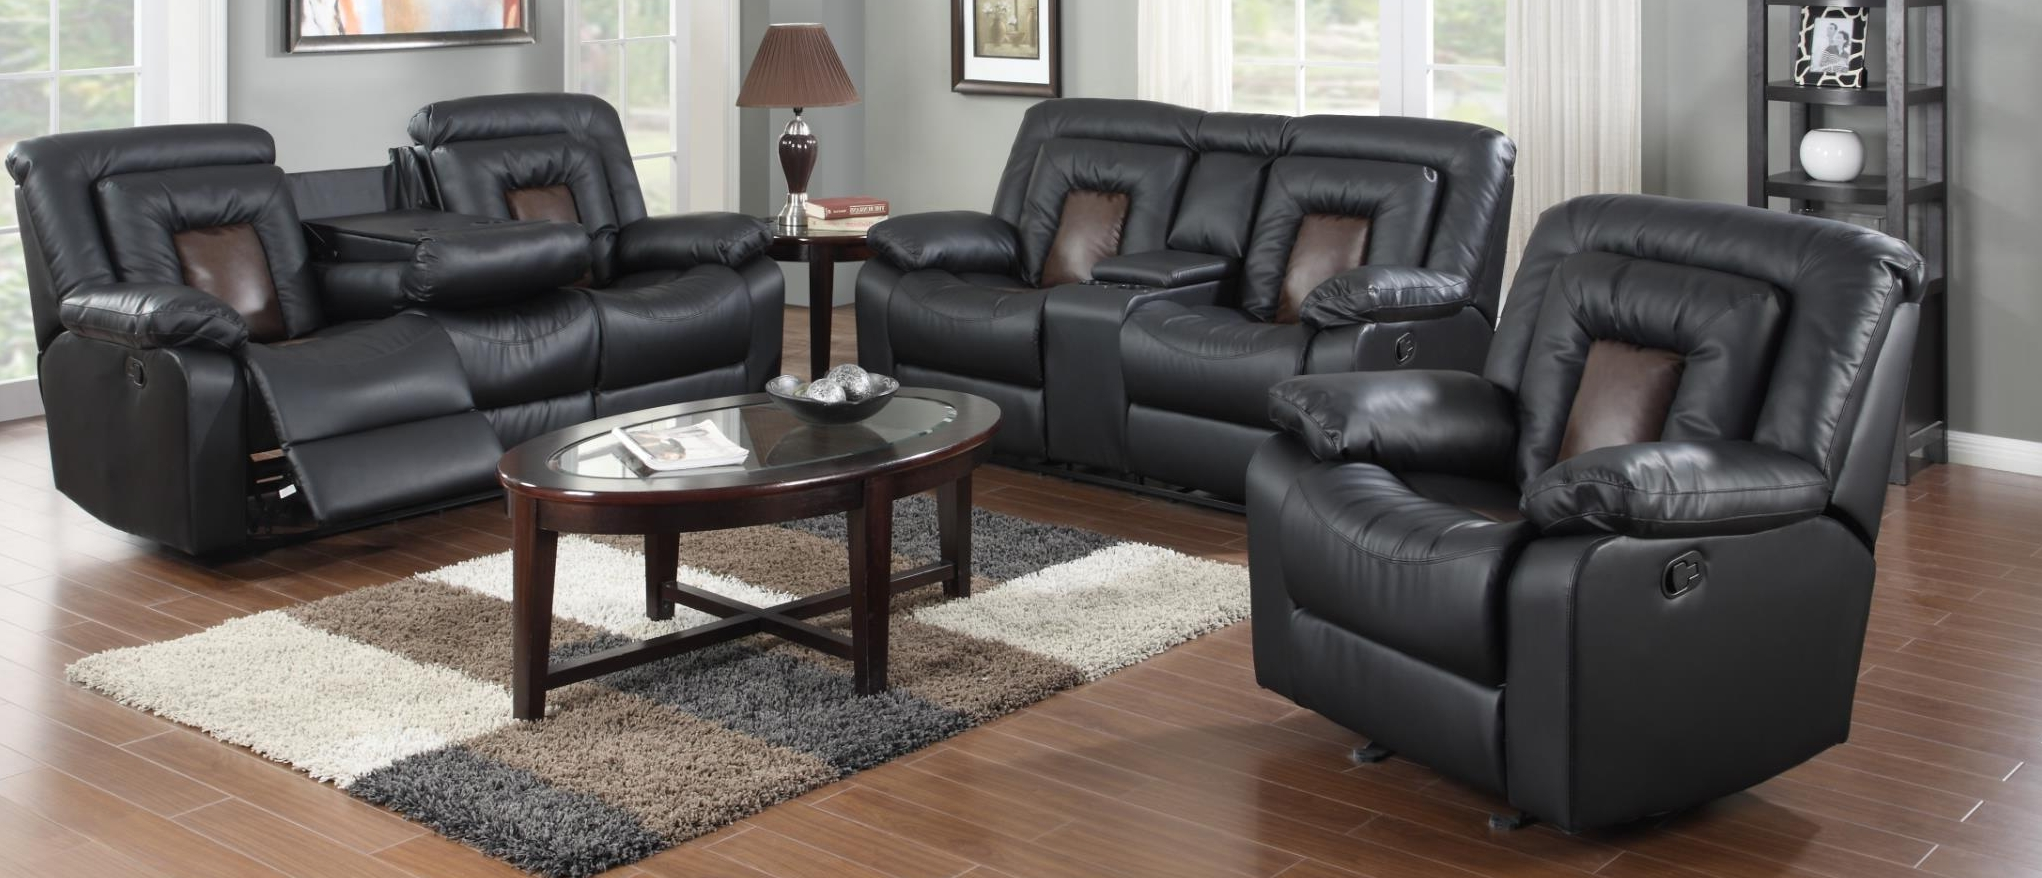 Virginia Sectional Sofas With Regard To Recent Sofa & Sectionals – Pluto Distribution (Gallery 11 of 20)